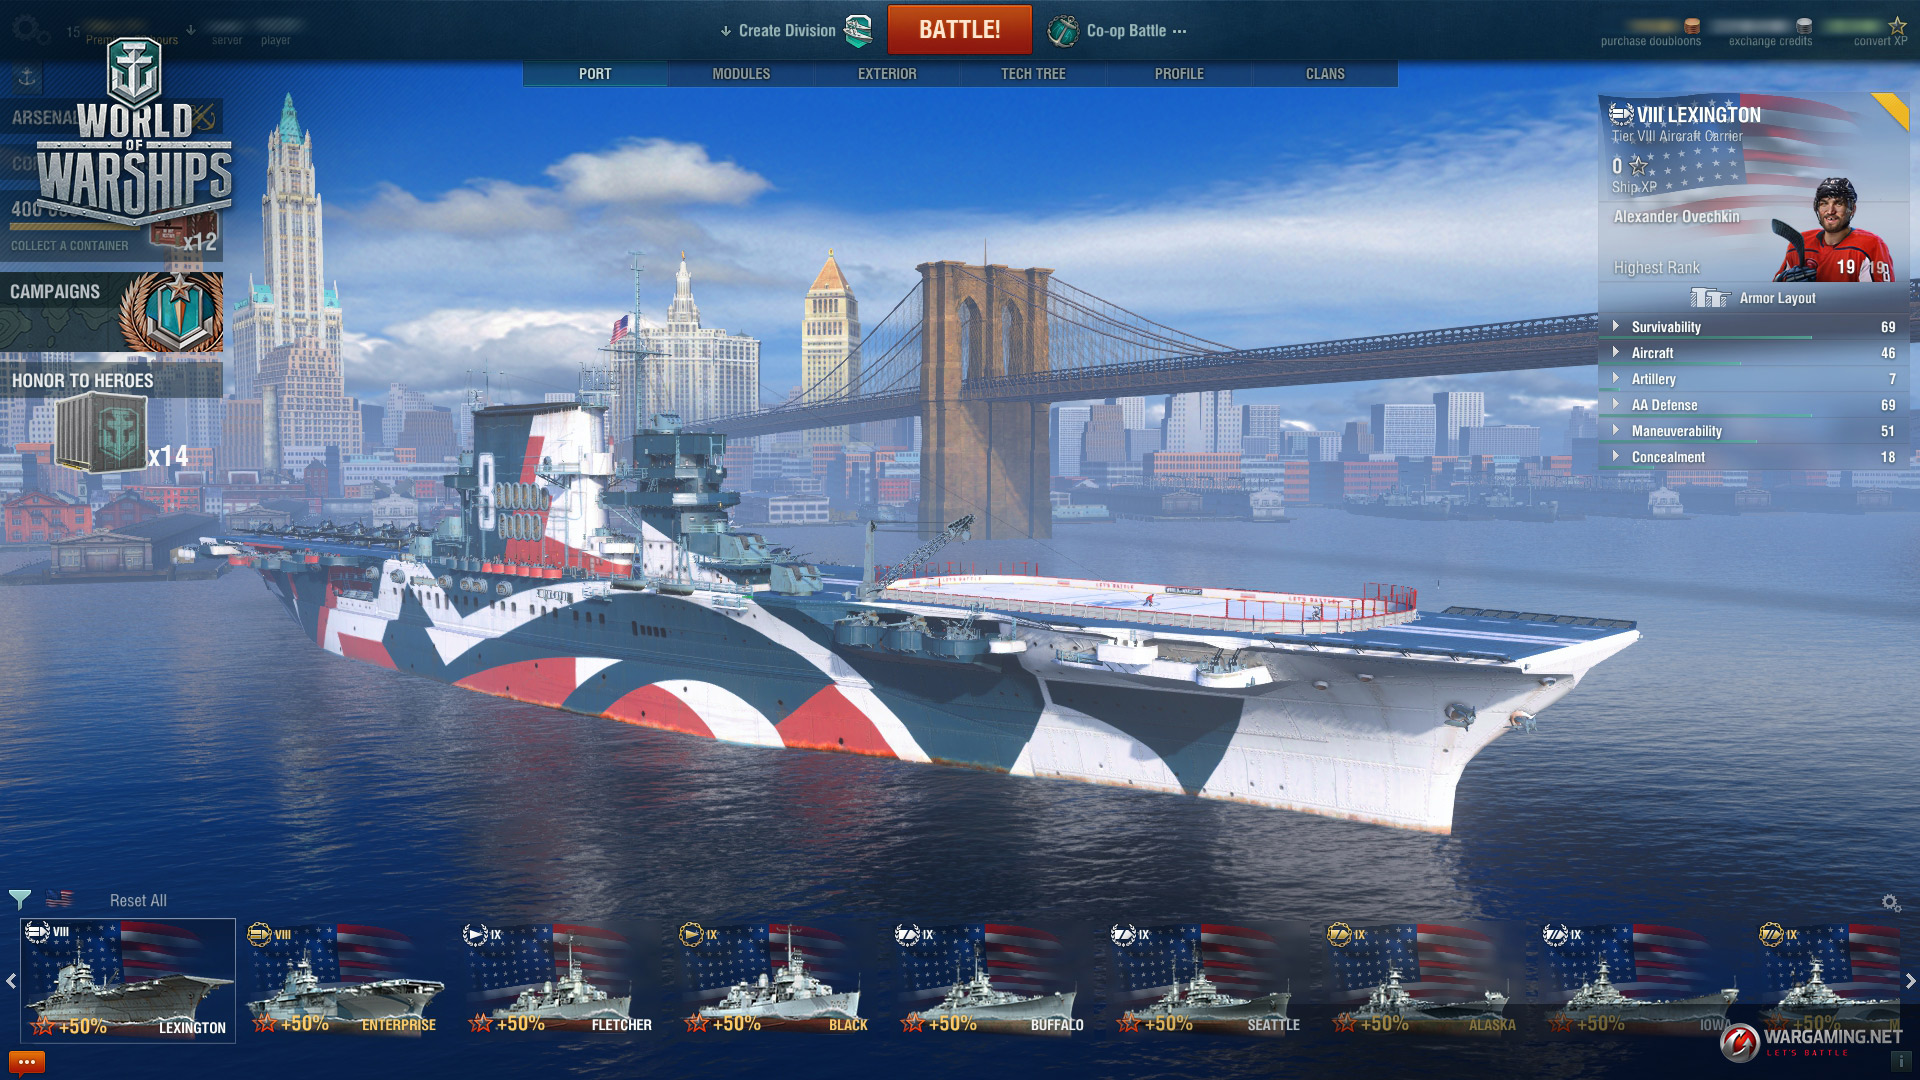 You'll want Alexander Ovechkin as your World of Warships